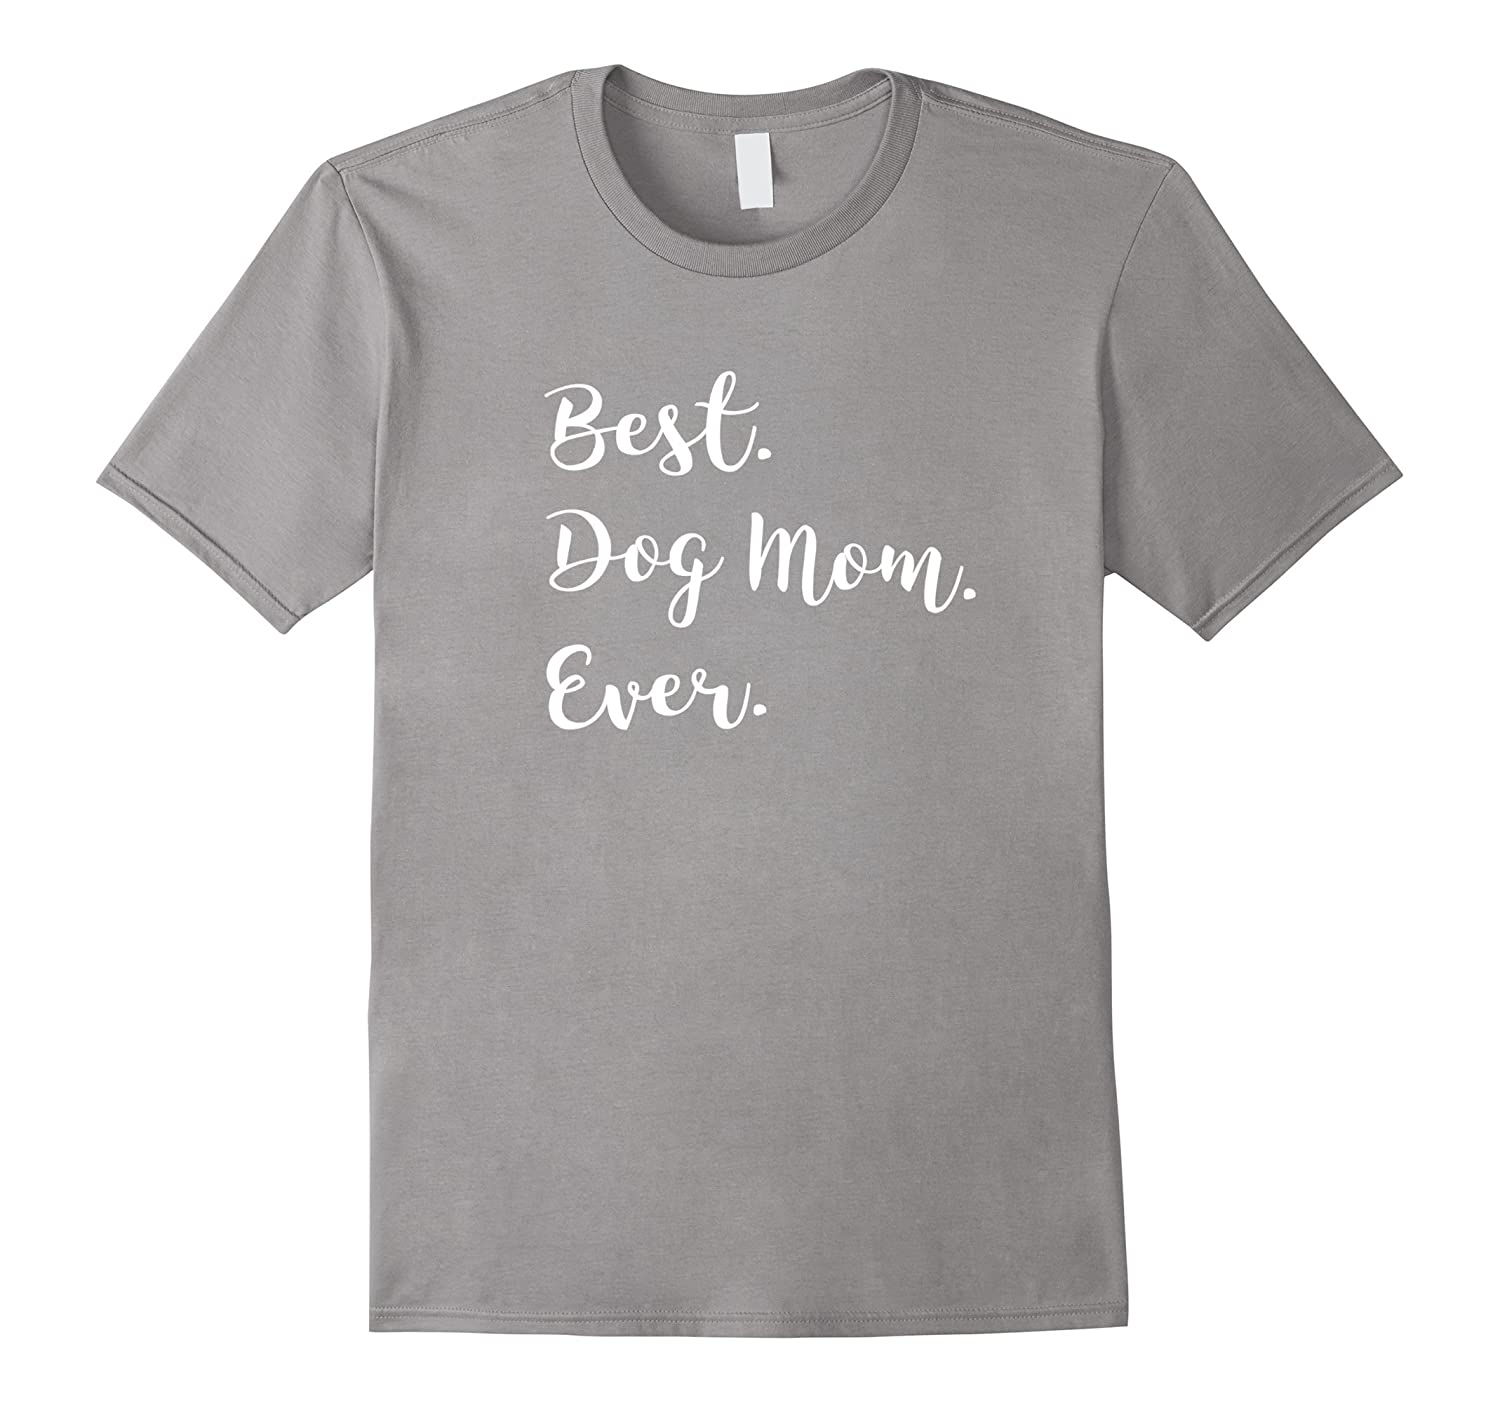 Best Dog Mom Ever tshirt in pink blue grey  more-Vaci